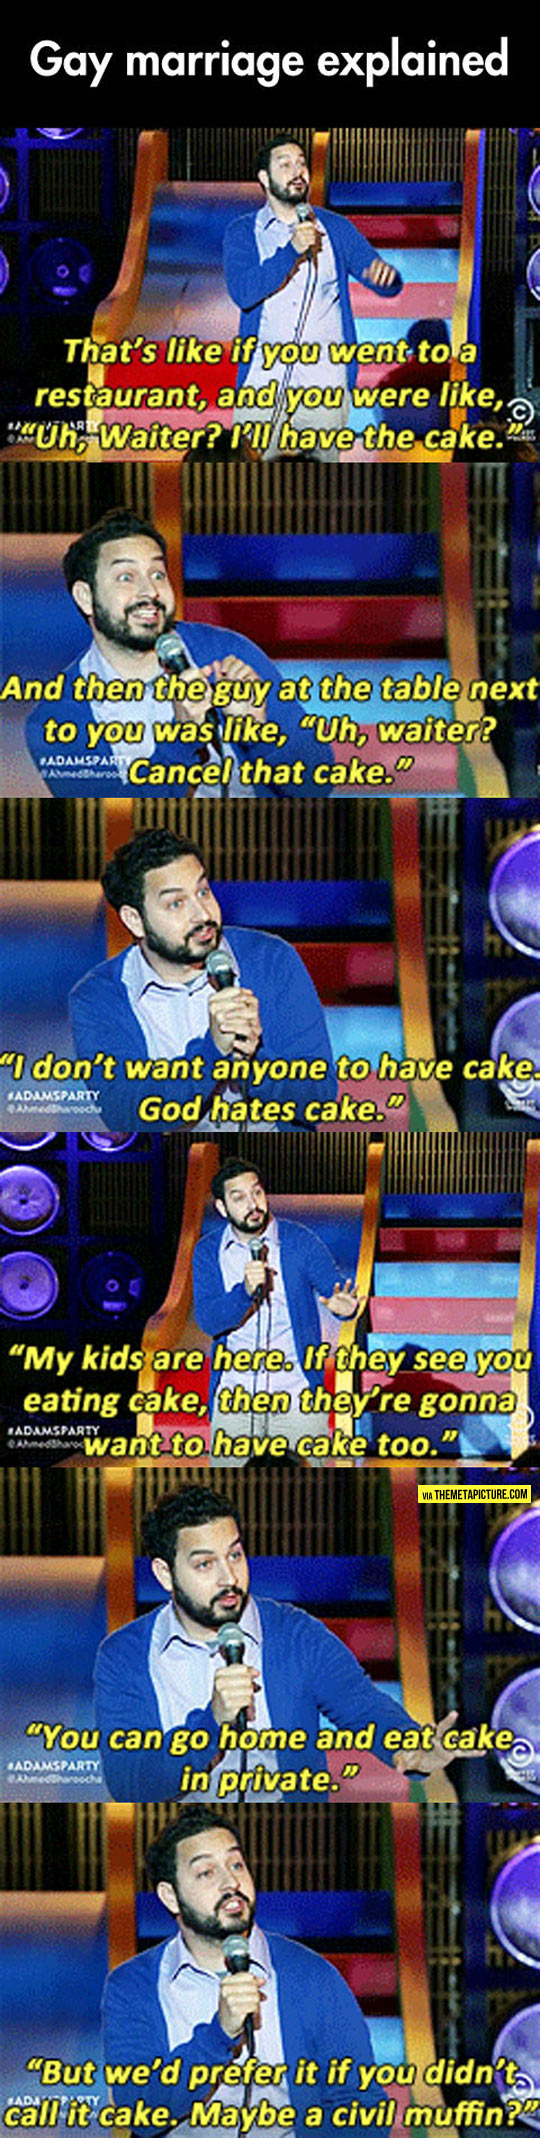 cool-gay-marriage-cake-waiter